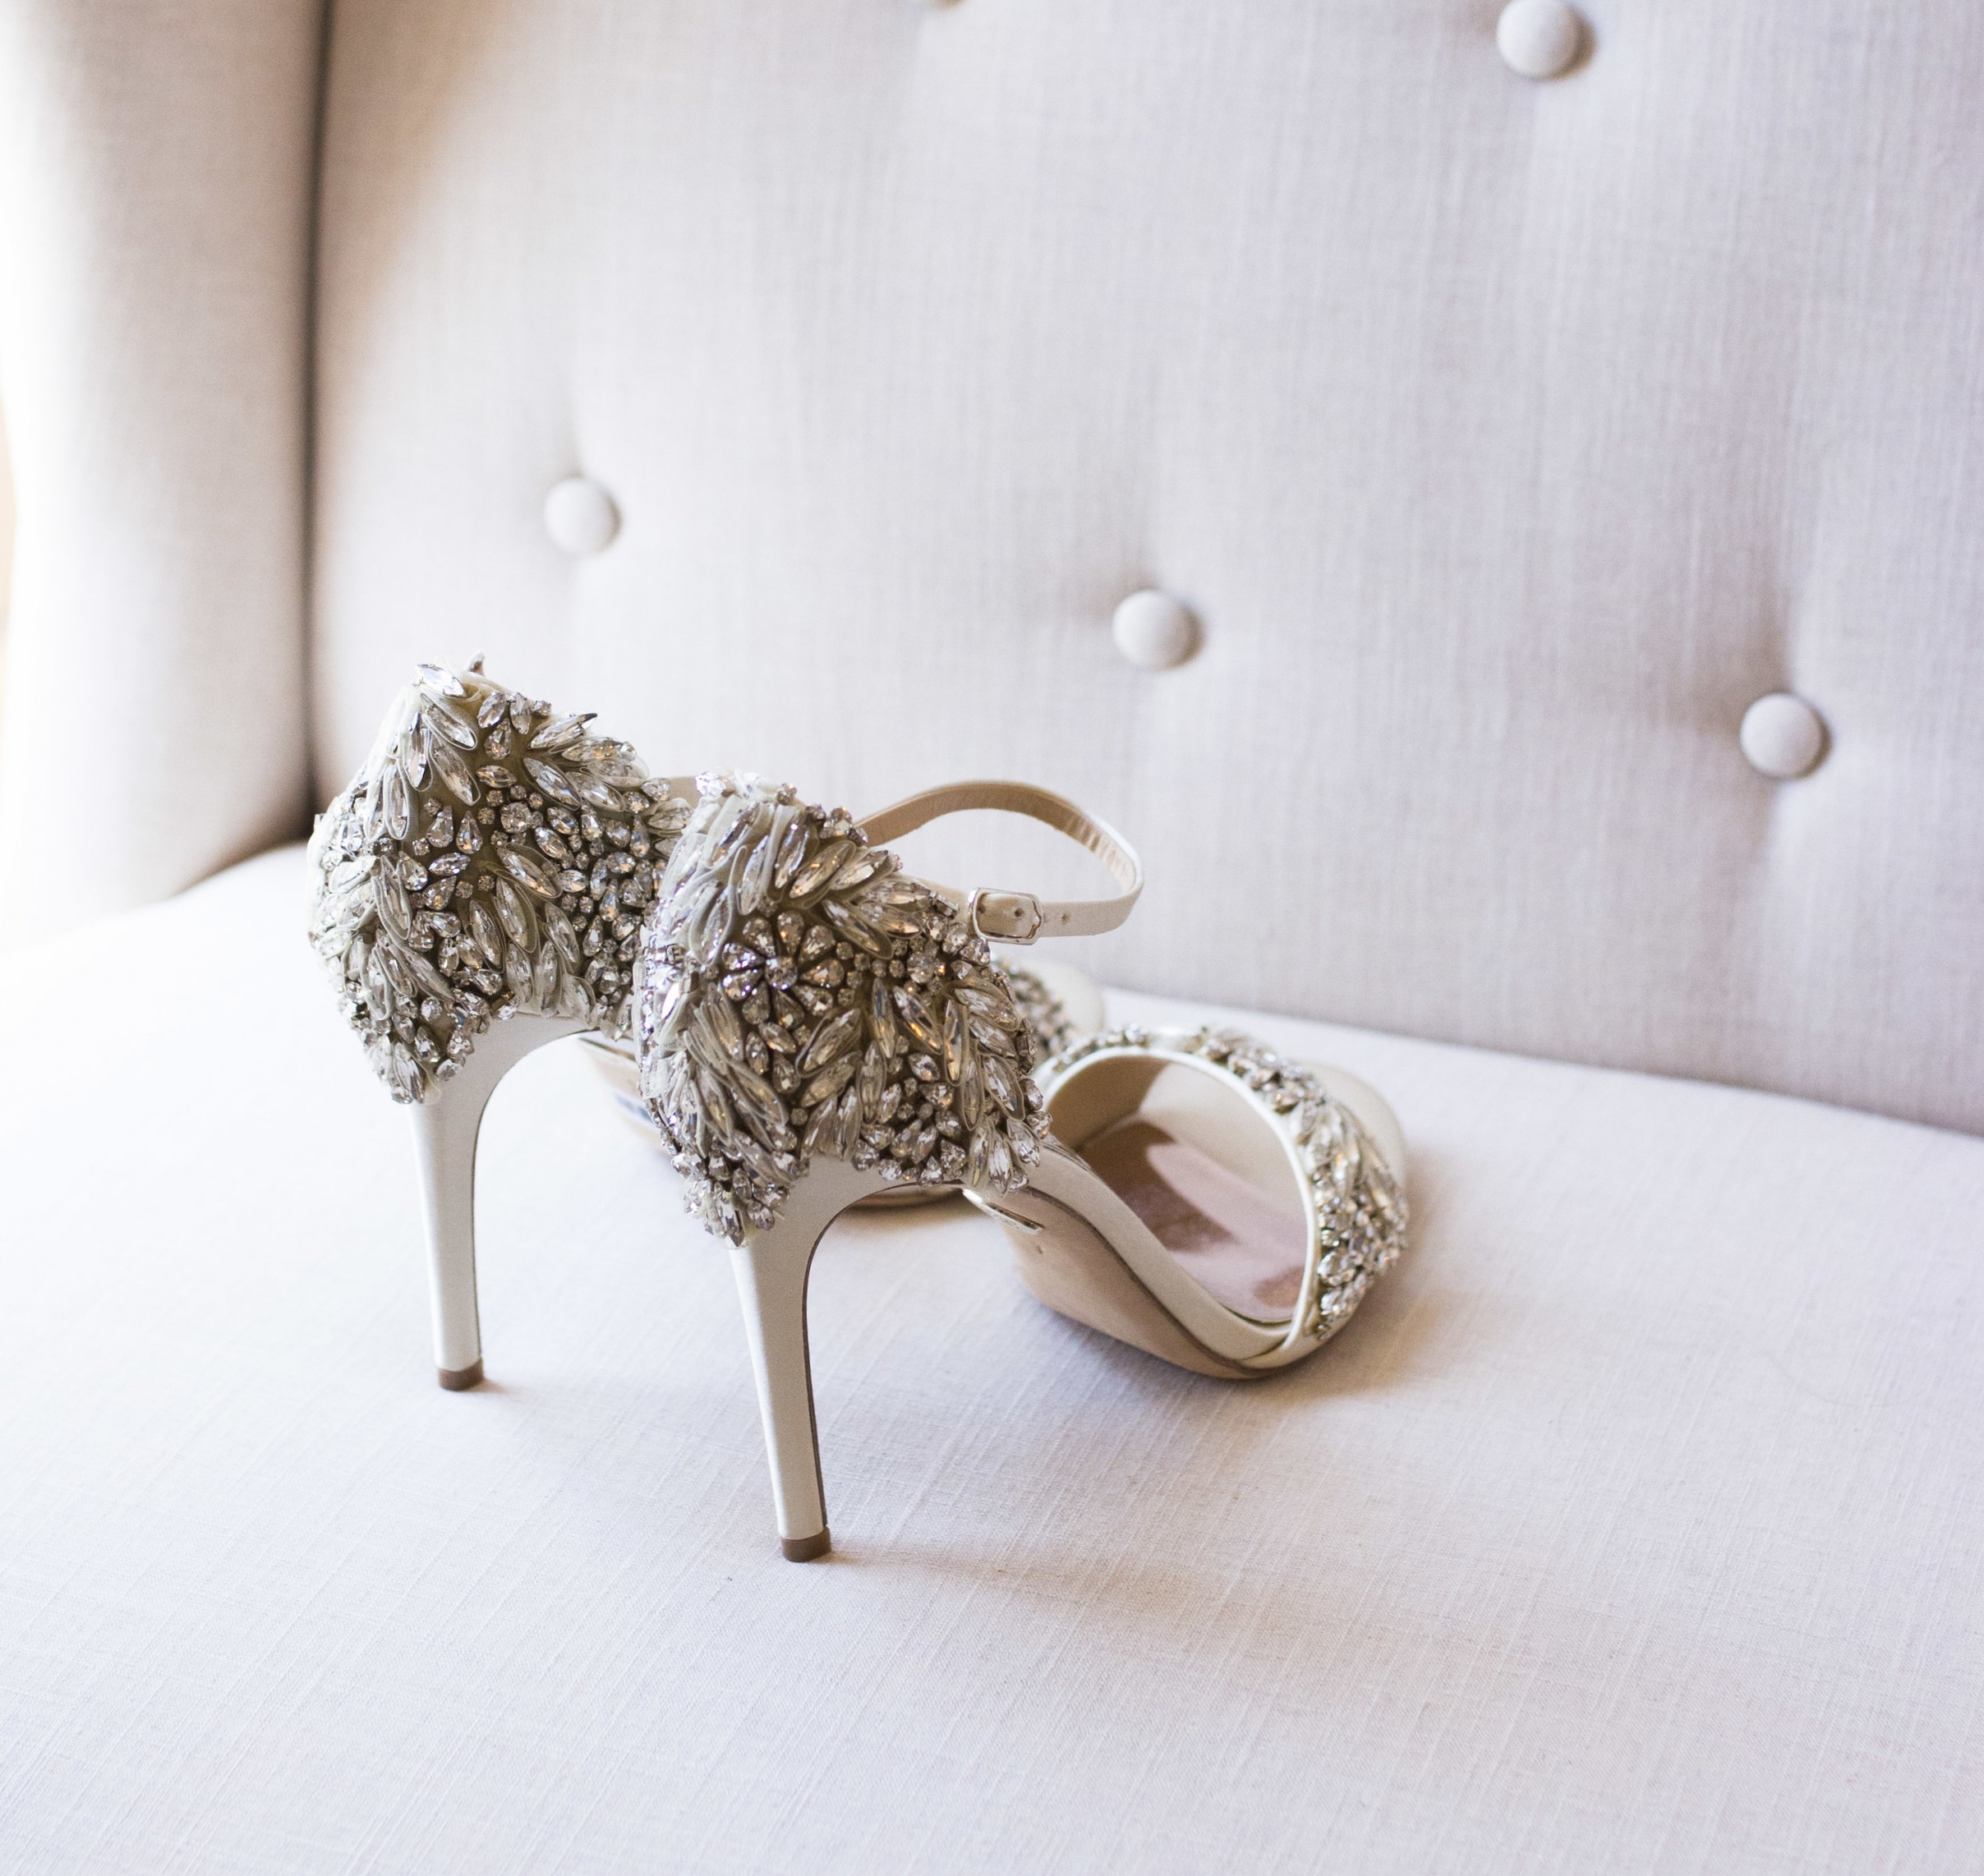 Bridal shoes in Santa Rosa